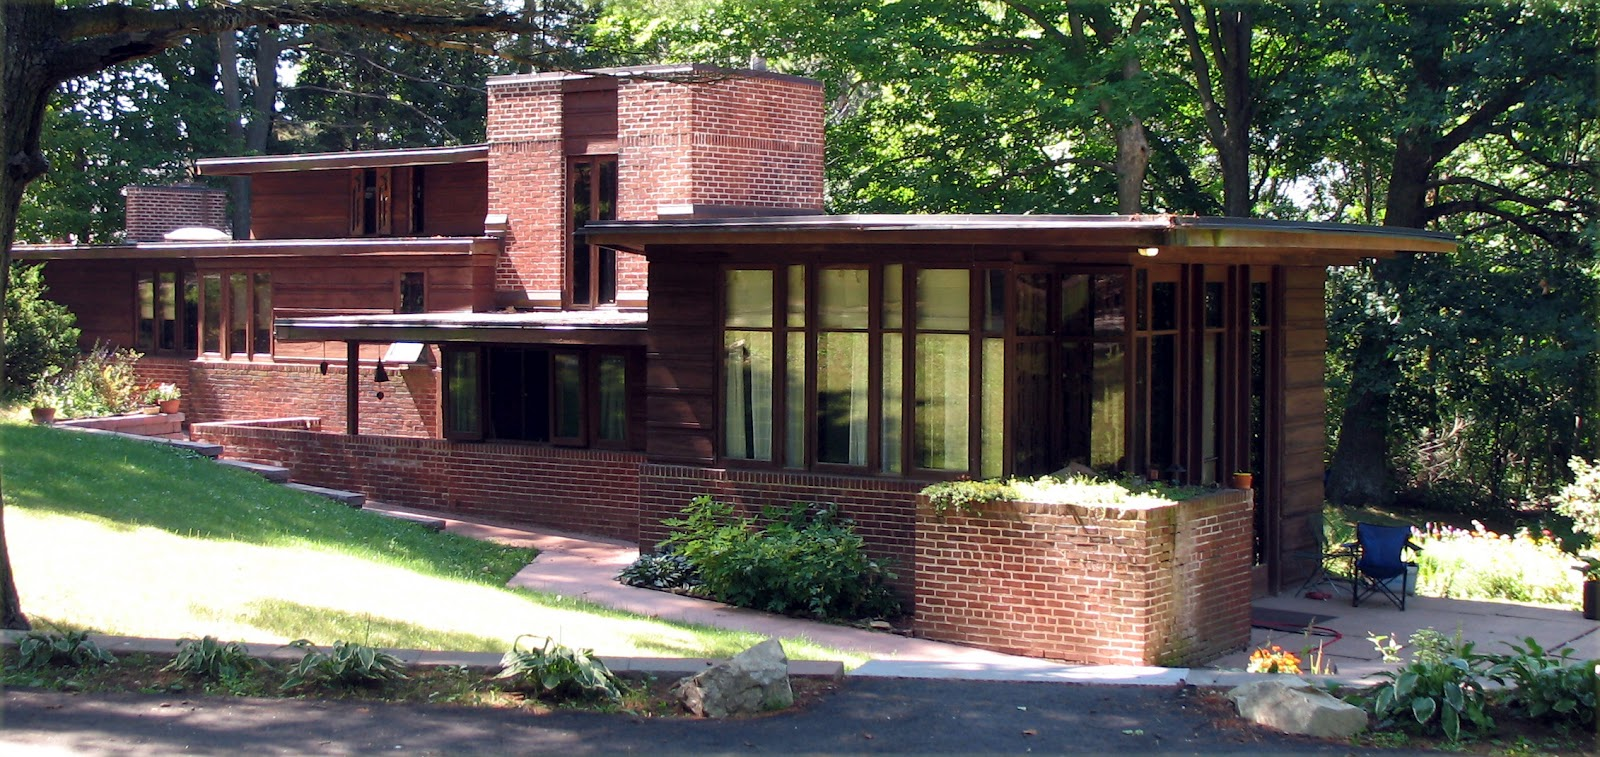 Beautiful abodes the works of frank lloyd wright for Frank lloyd wright style house plans